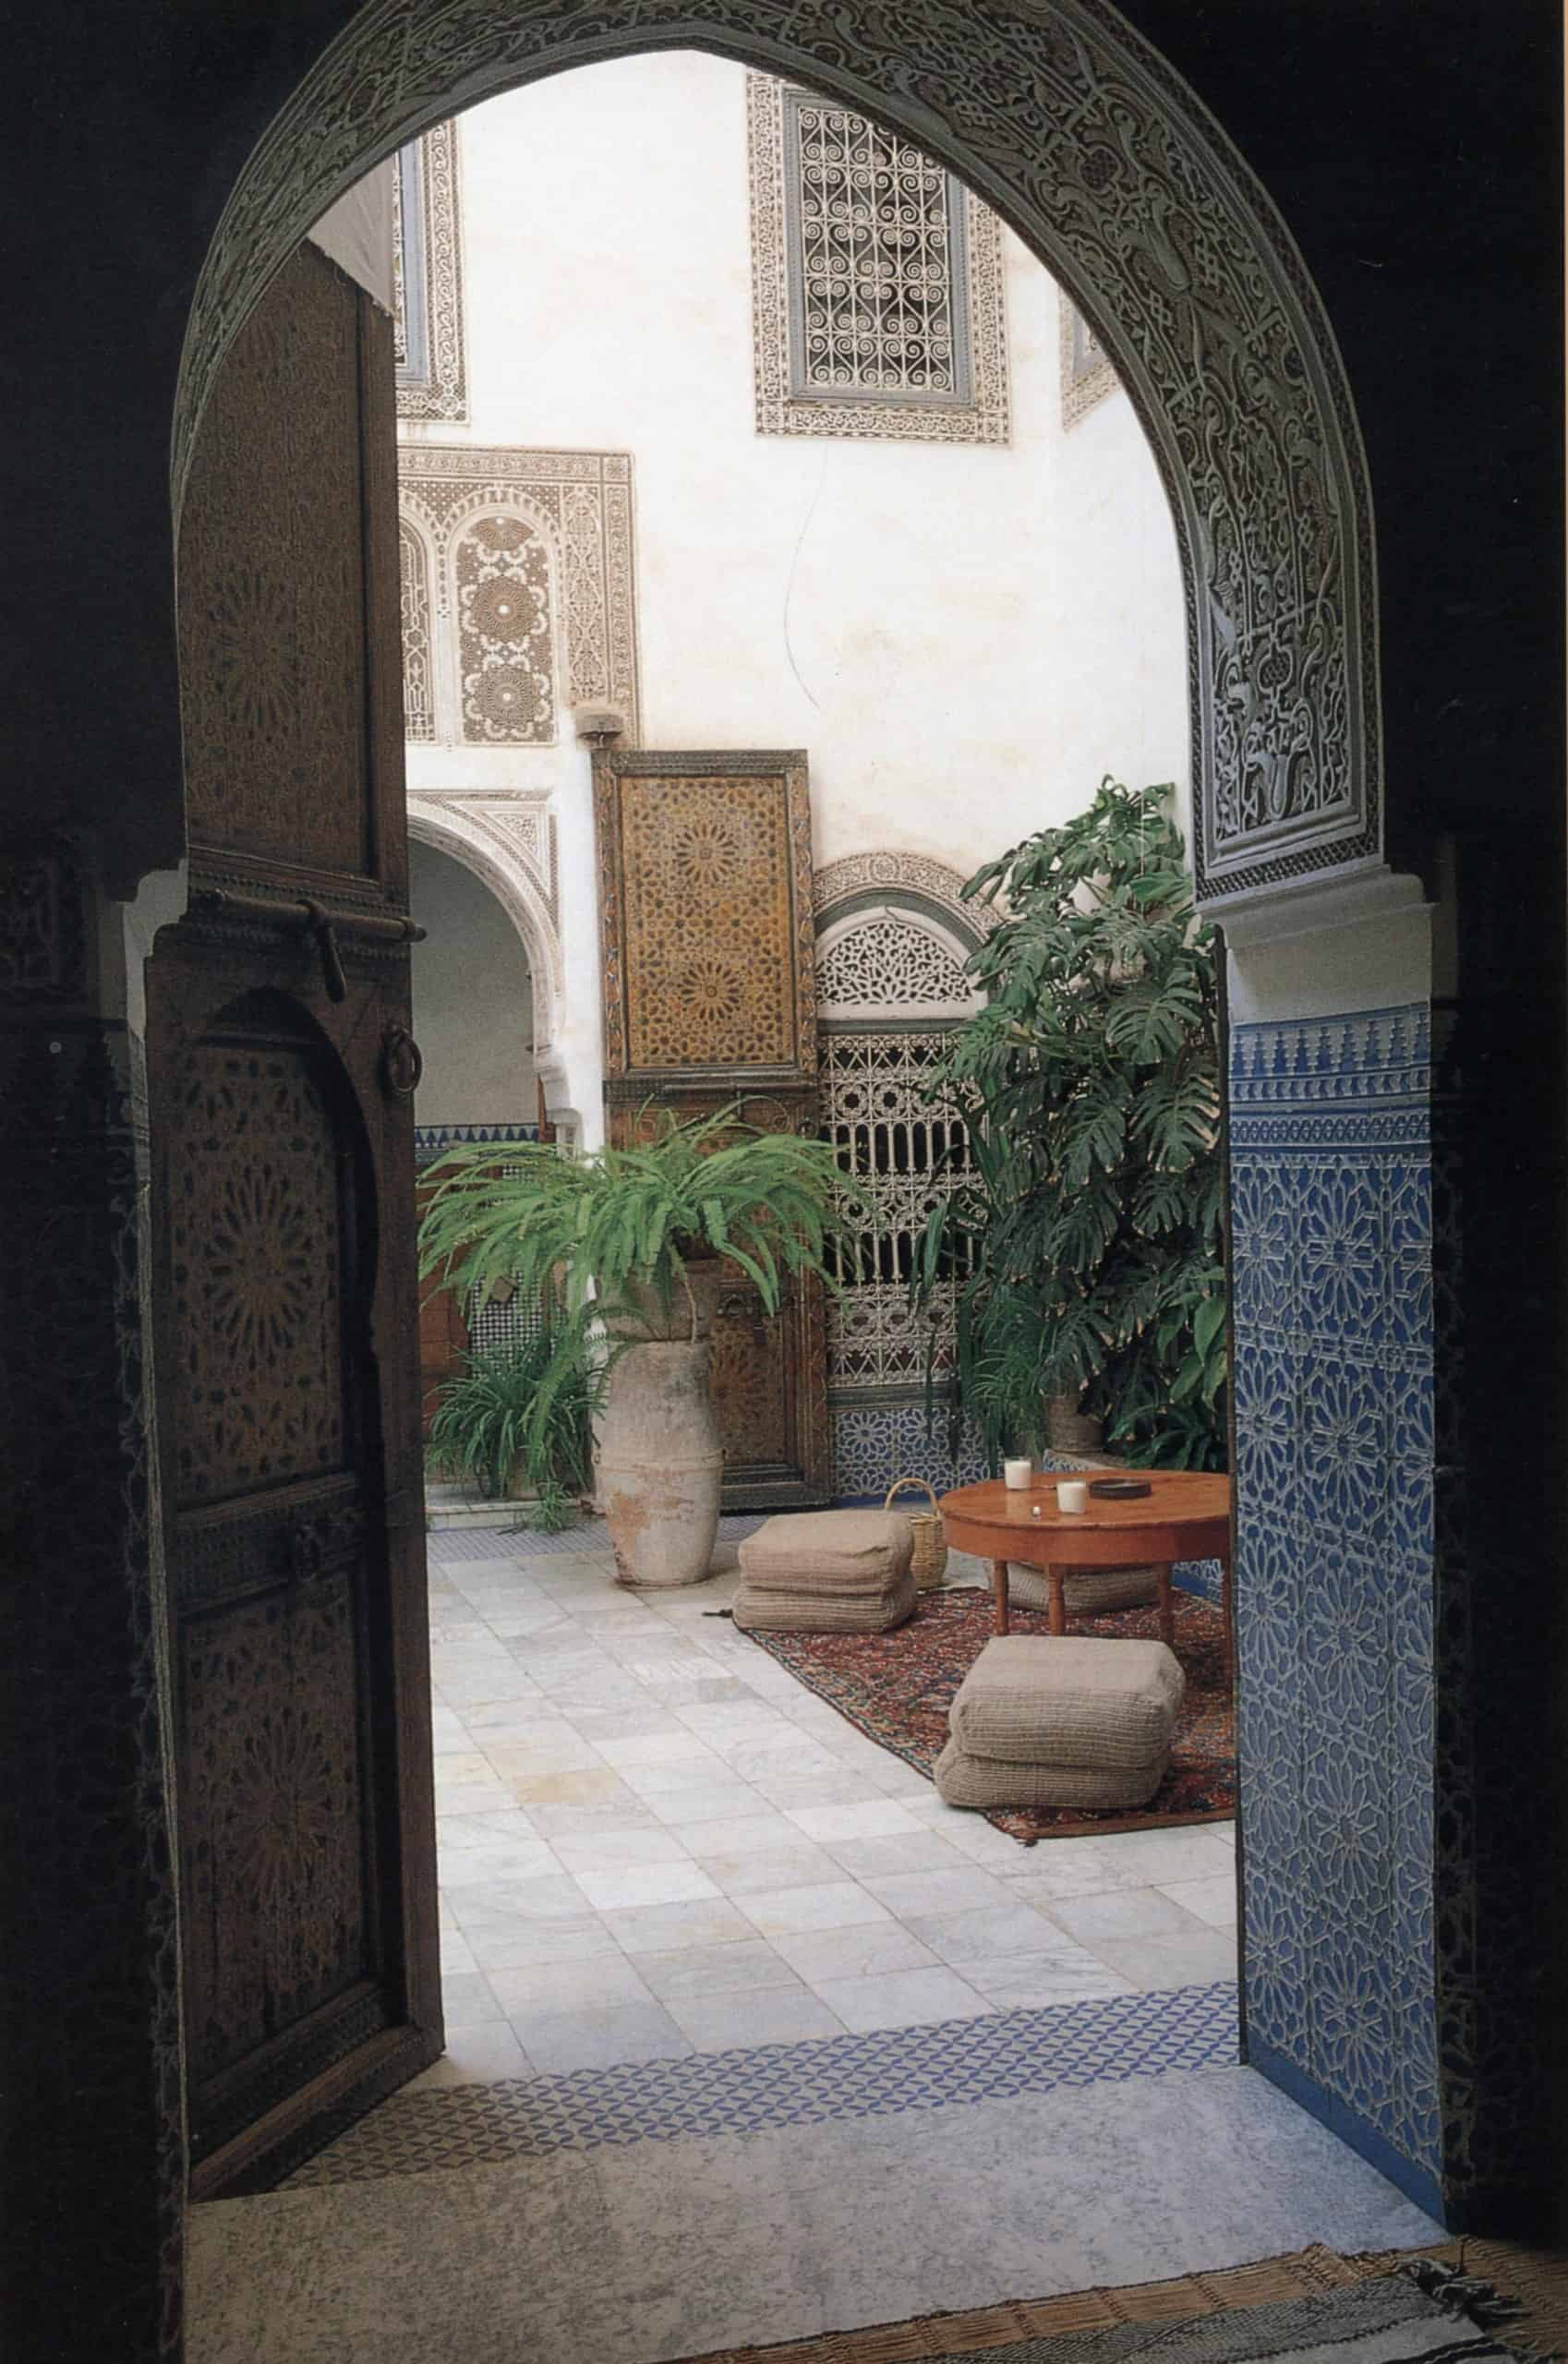 Moroccan Interior Design Style Expert Service & Moroccan Islamic Art Furniture Sale by INDOOR Architecture London UK